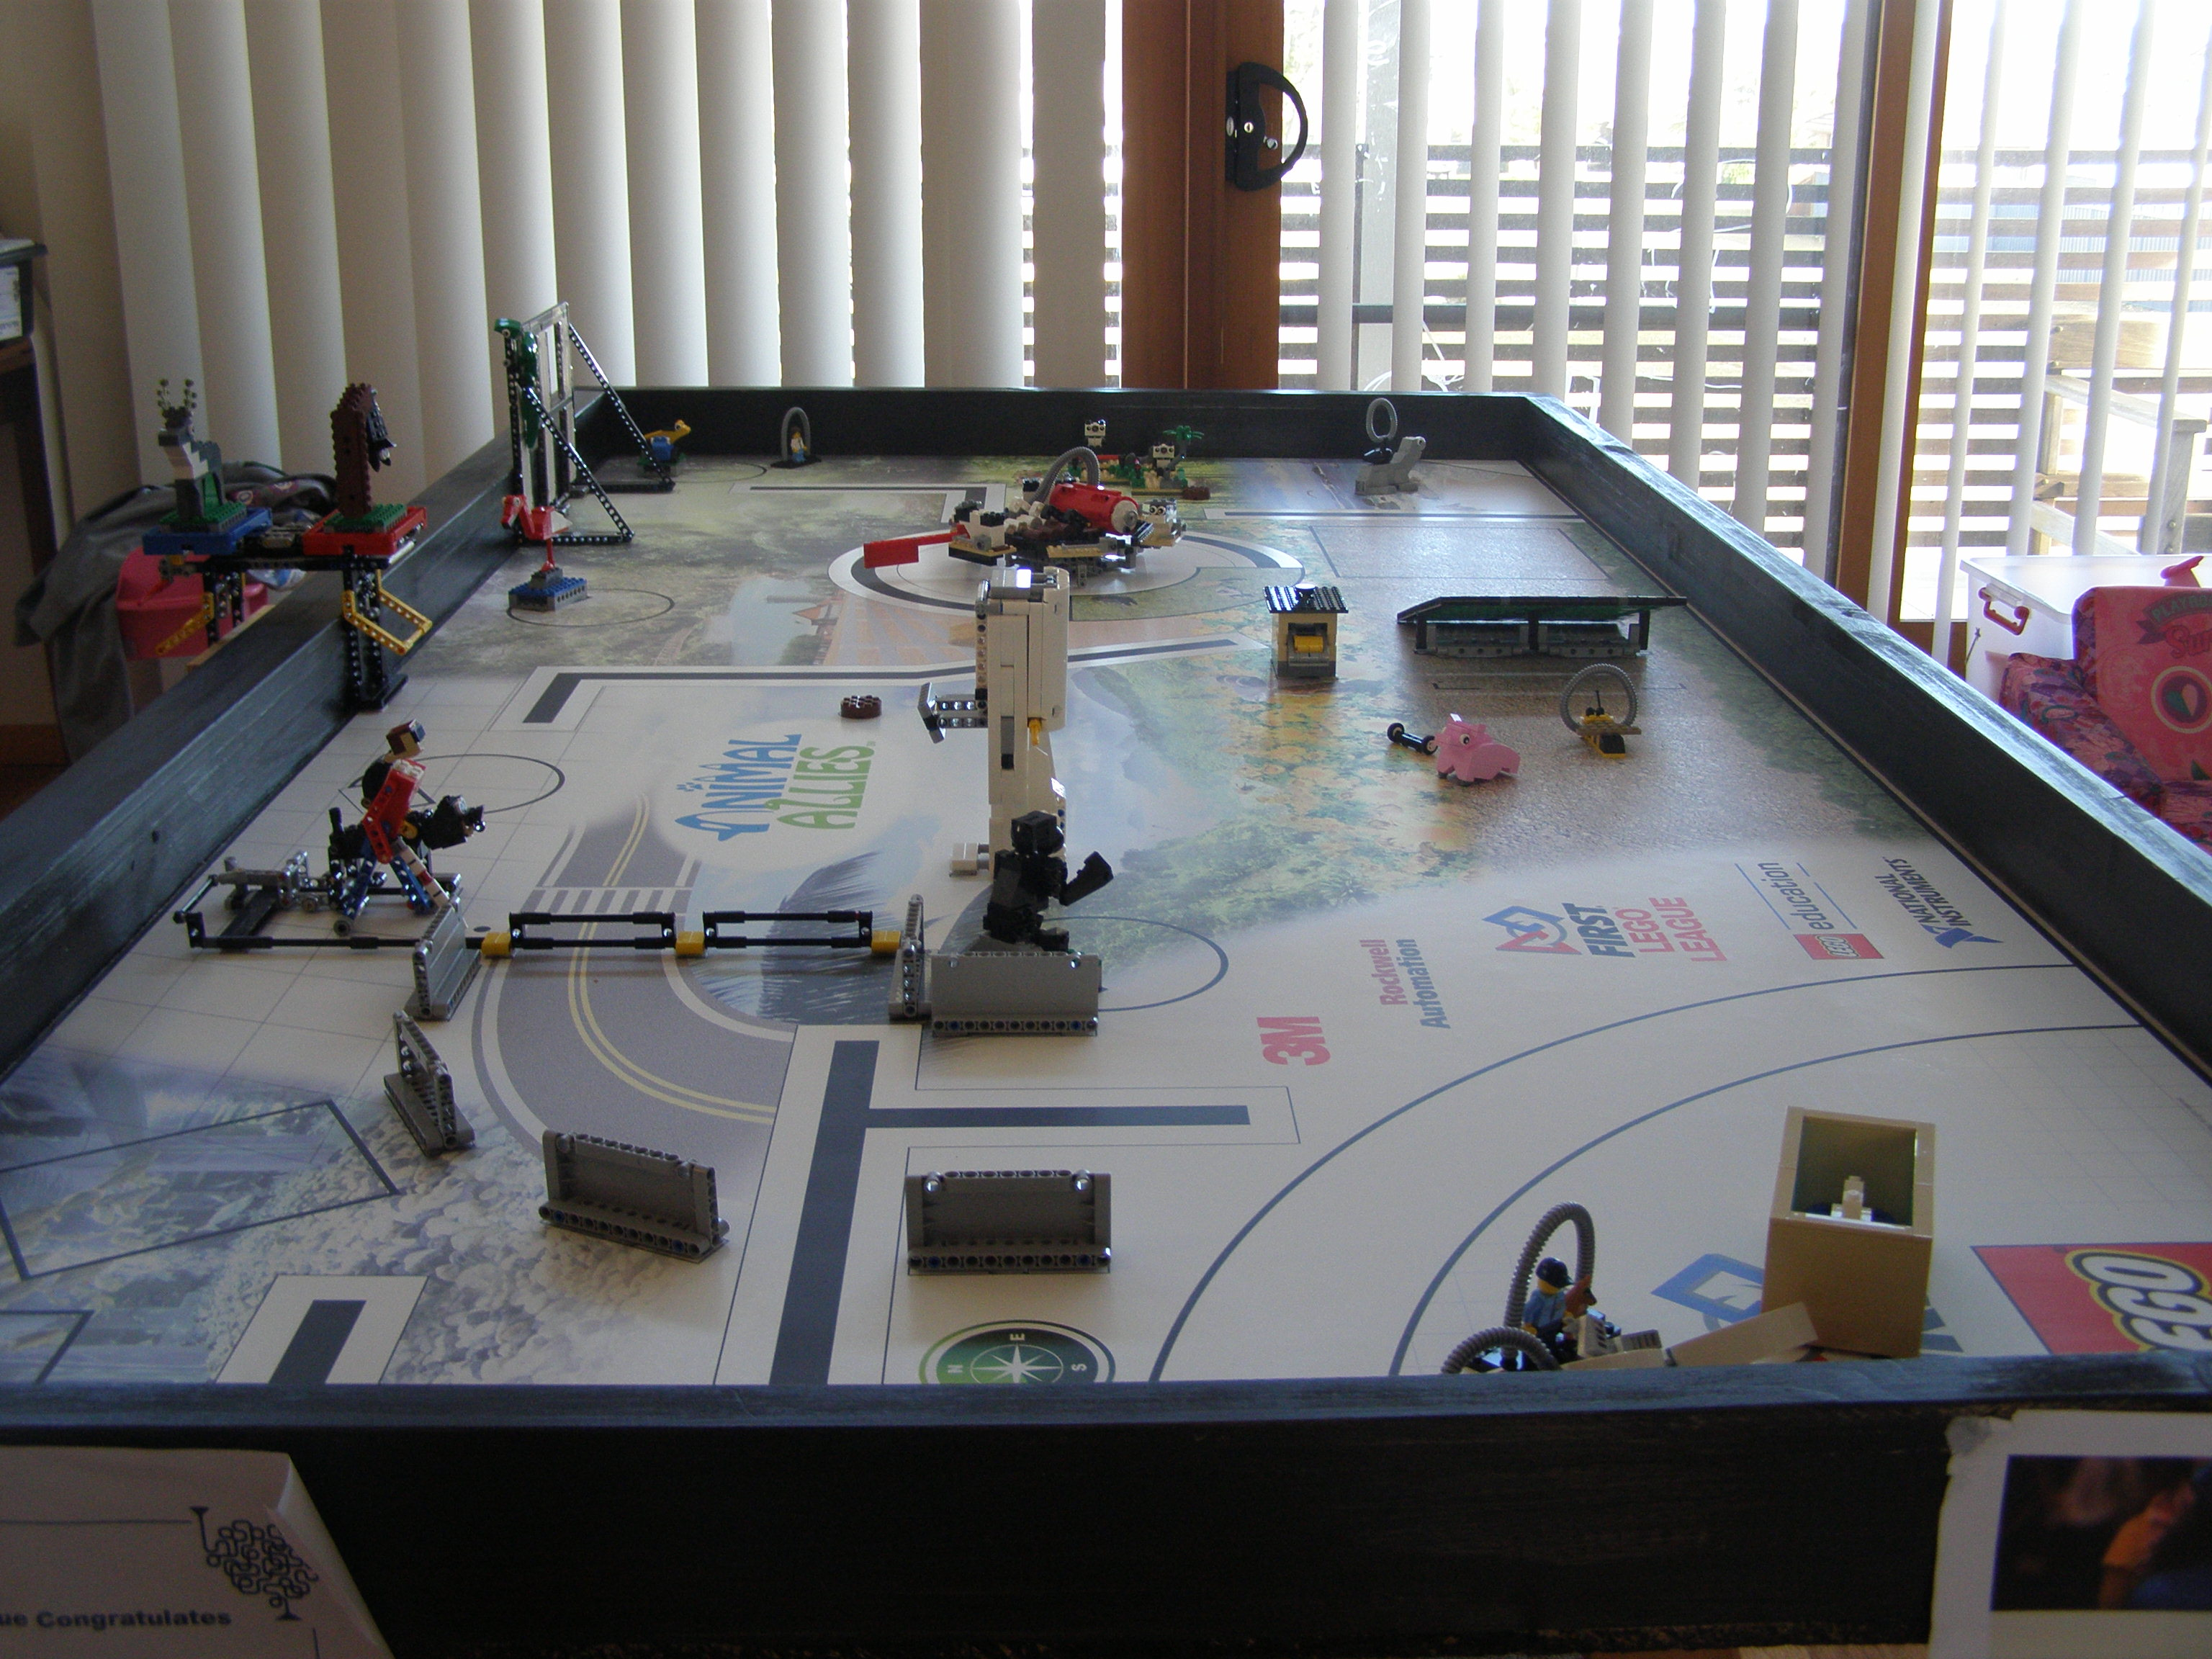 Practise table with mission models